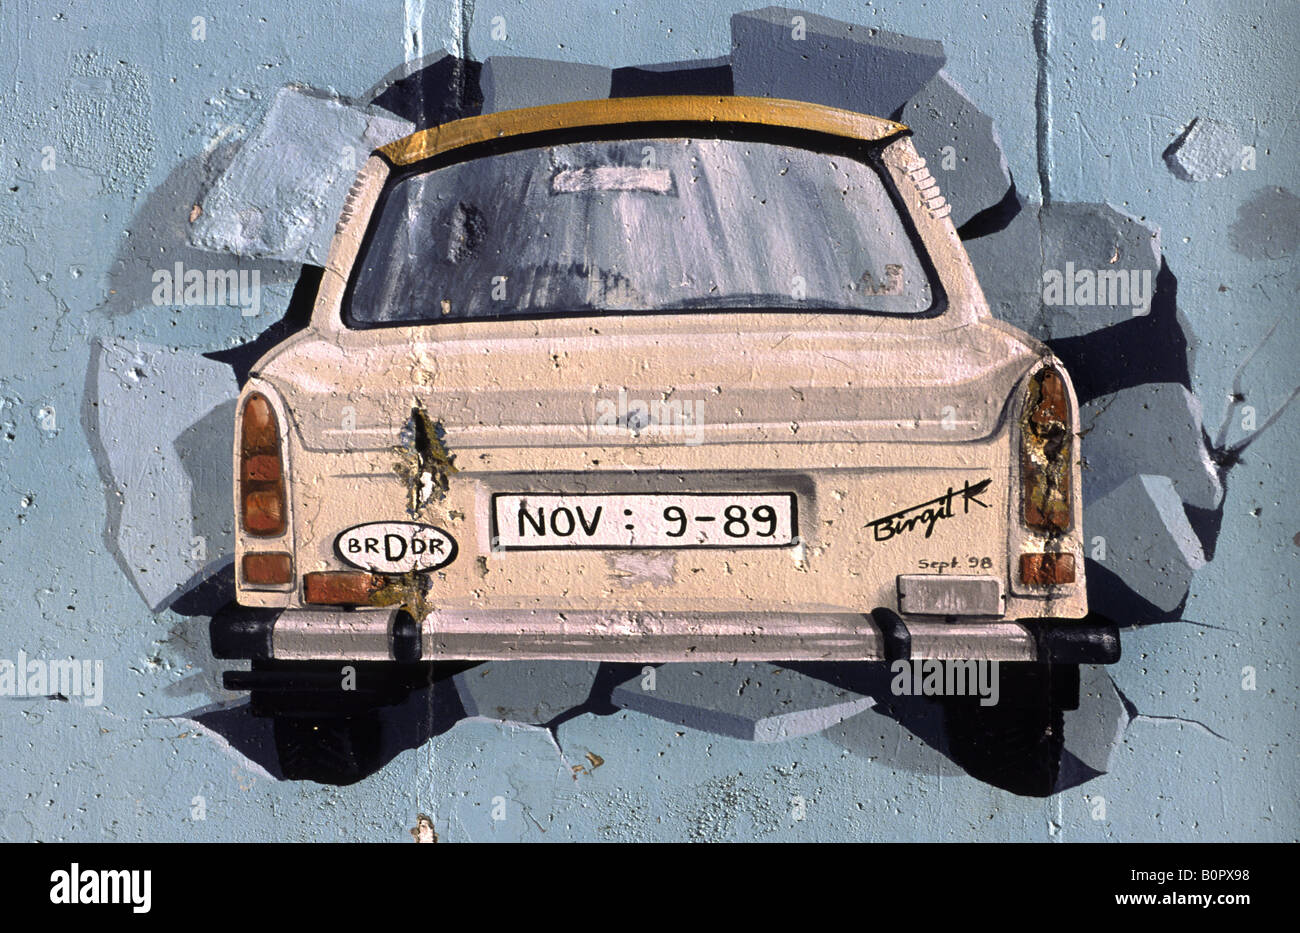 Art on the Berlin wall. Germany. - Stock Image